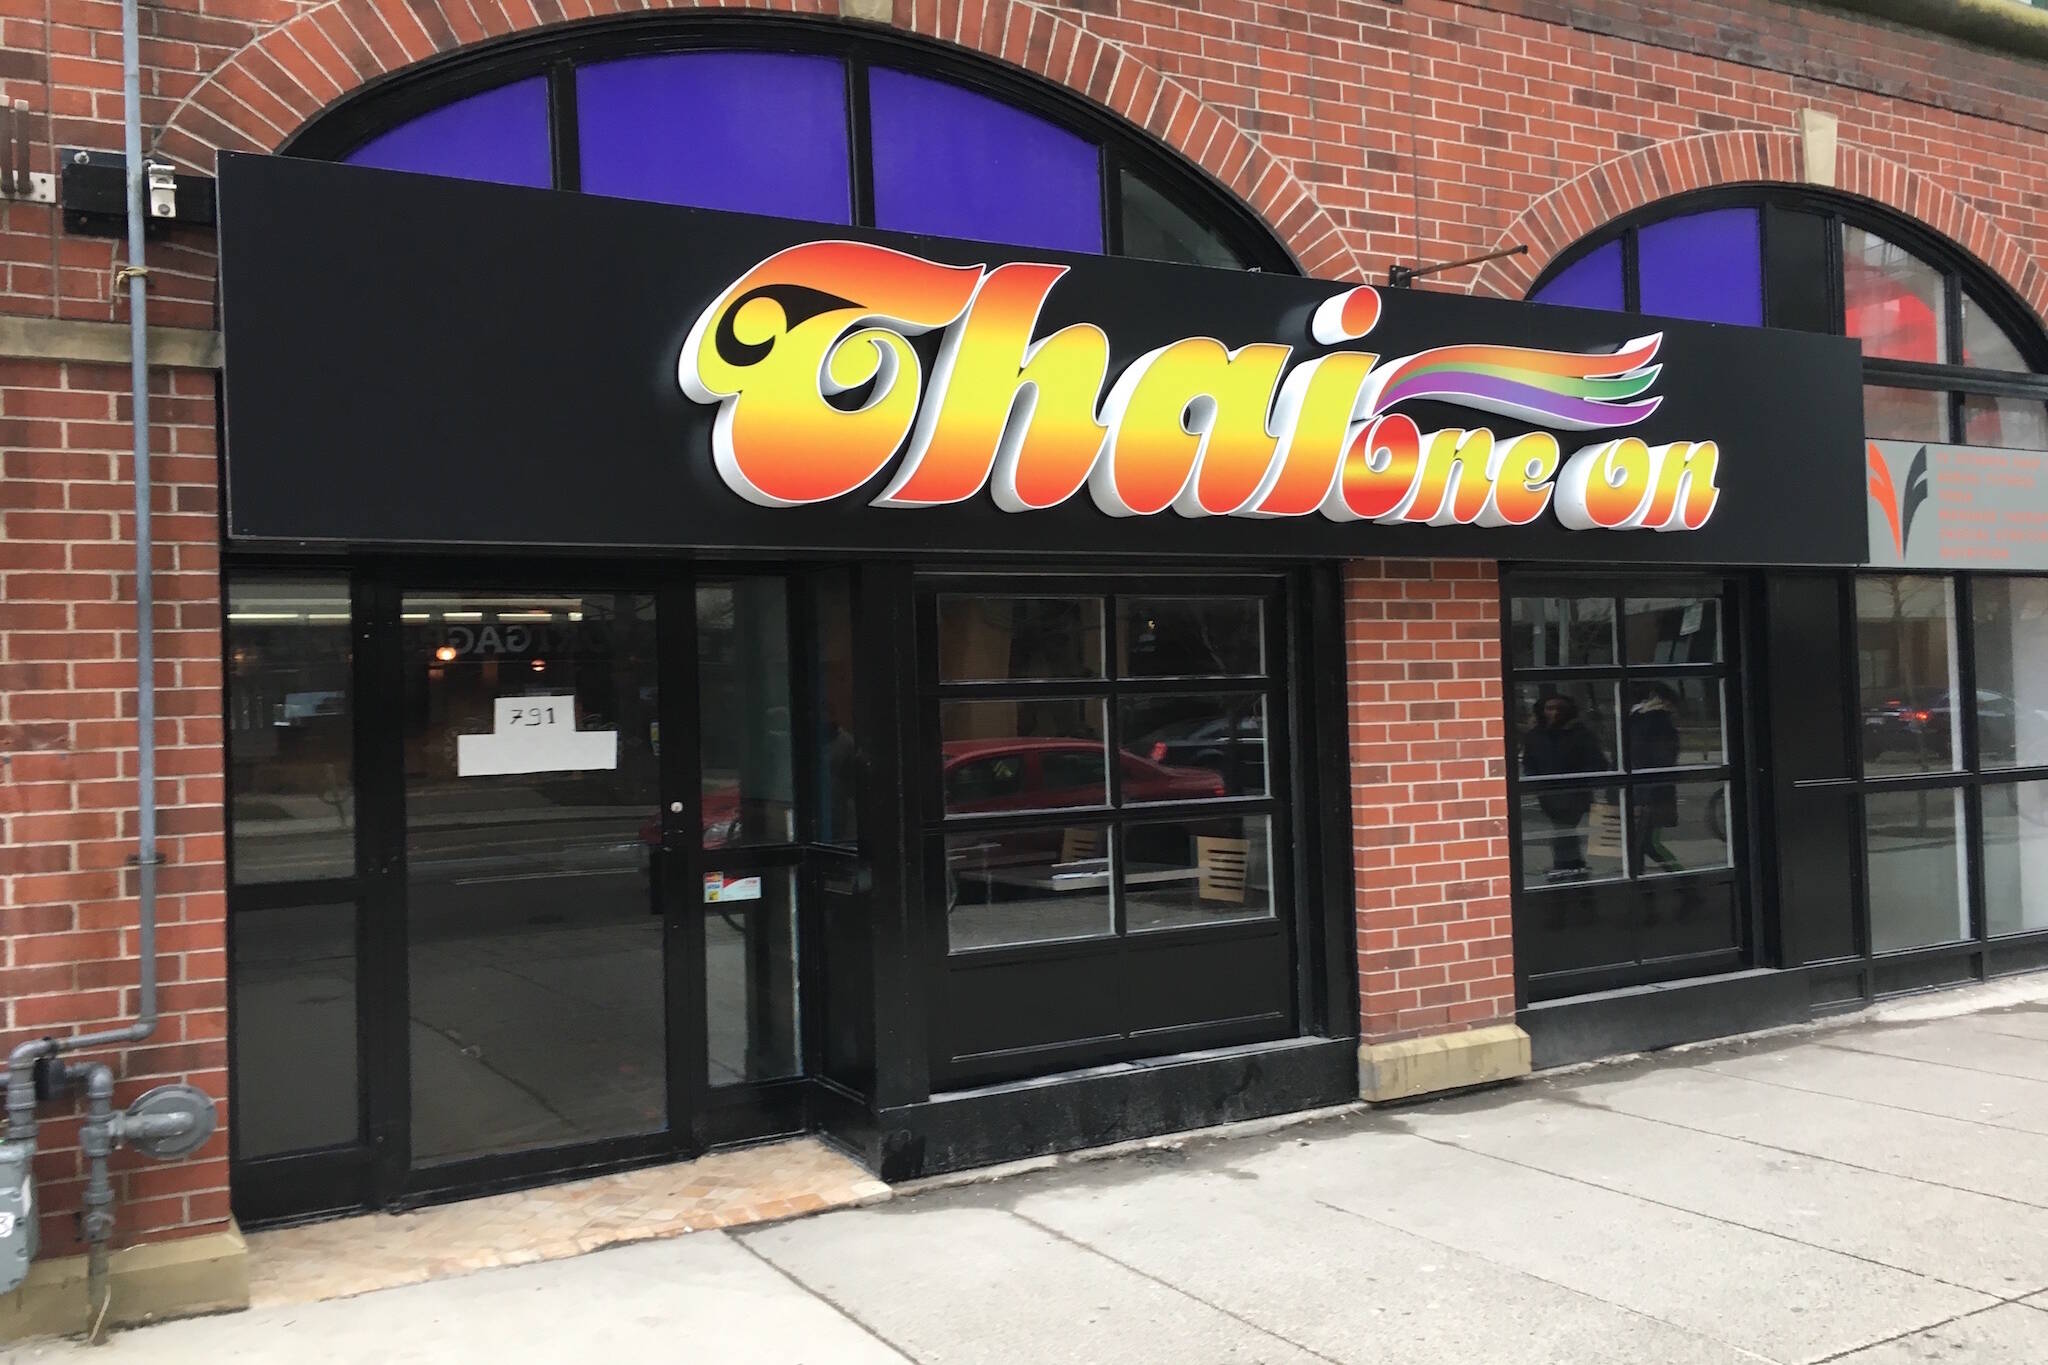 Thai One on toronto